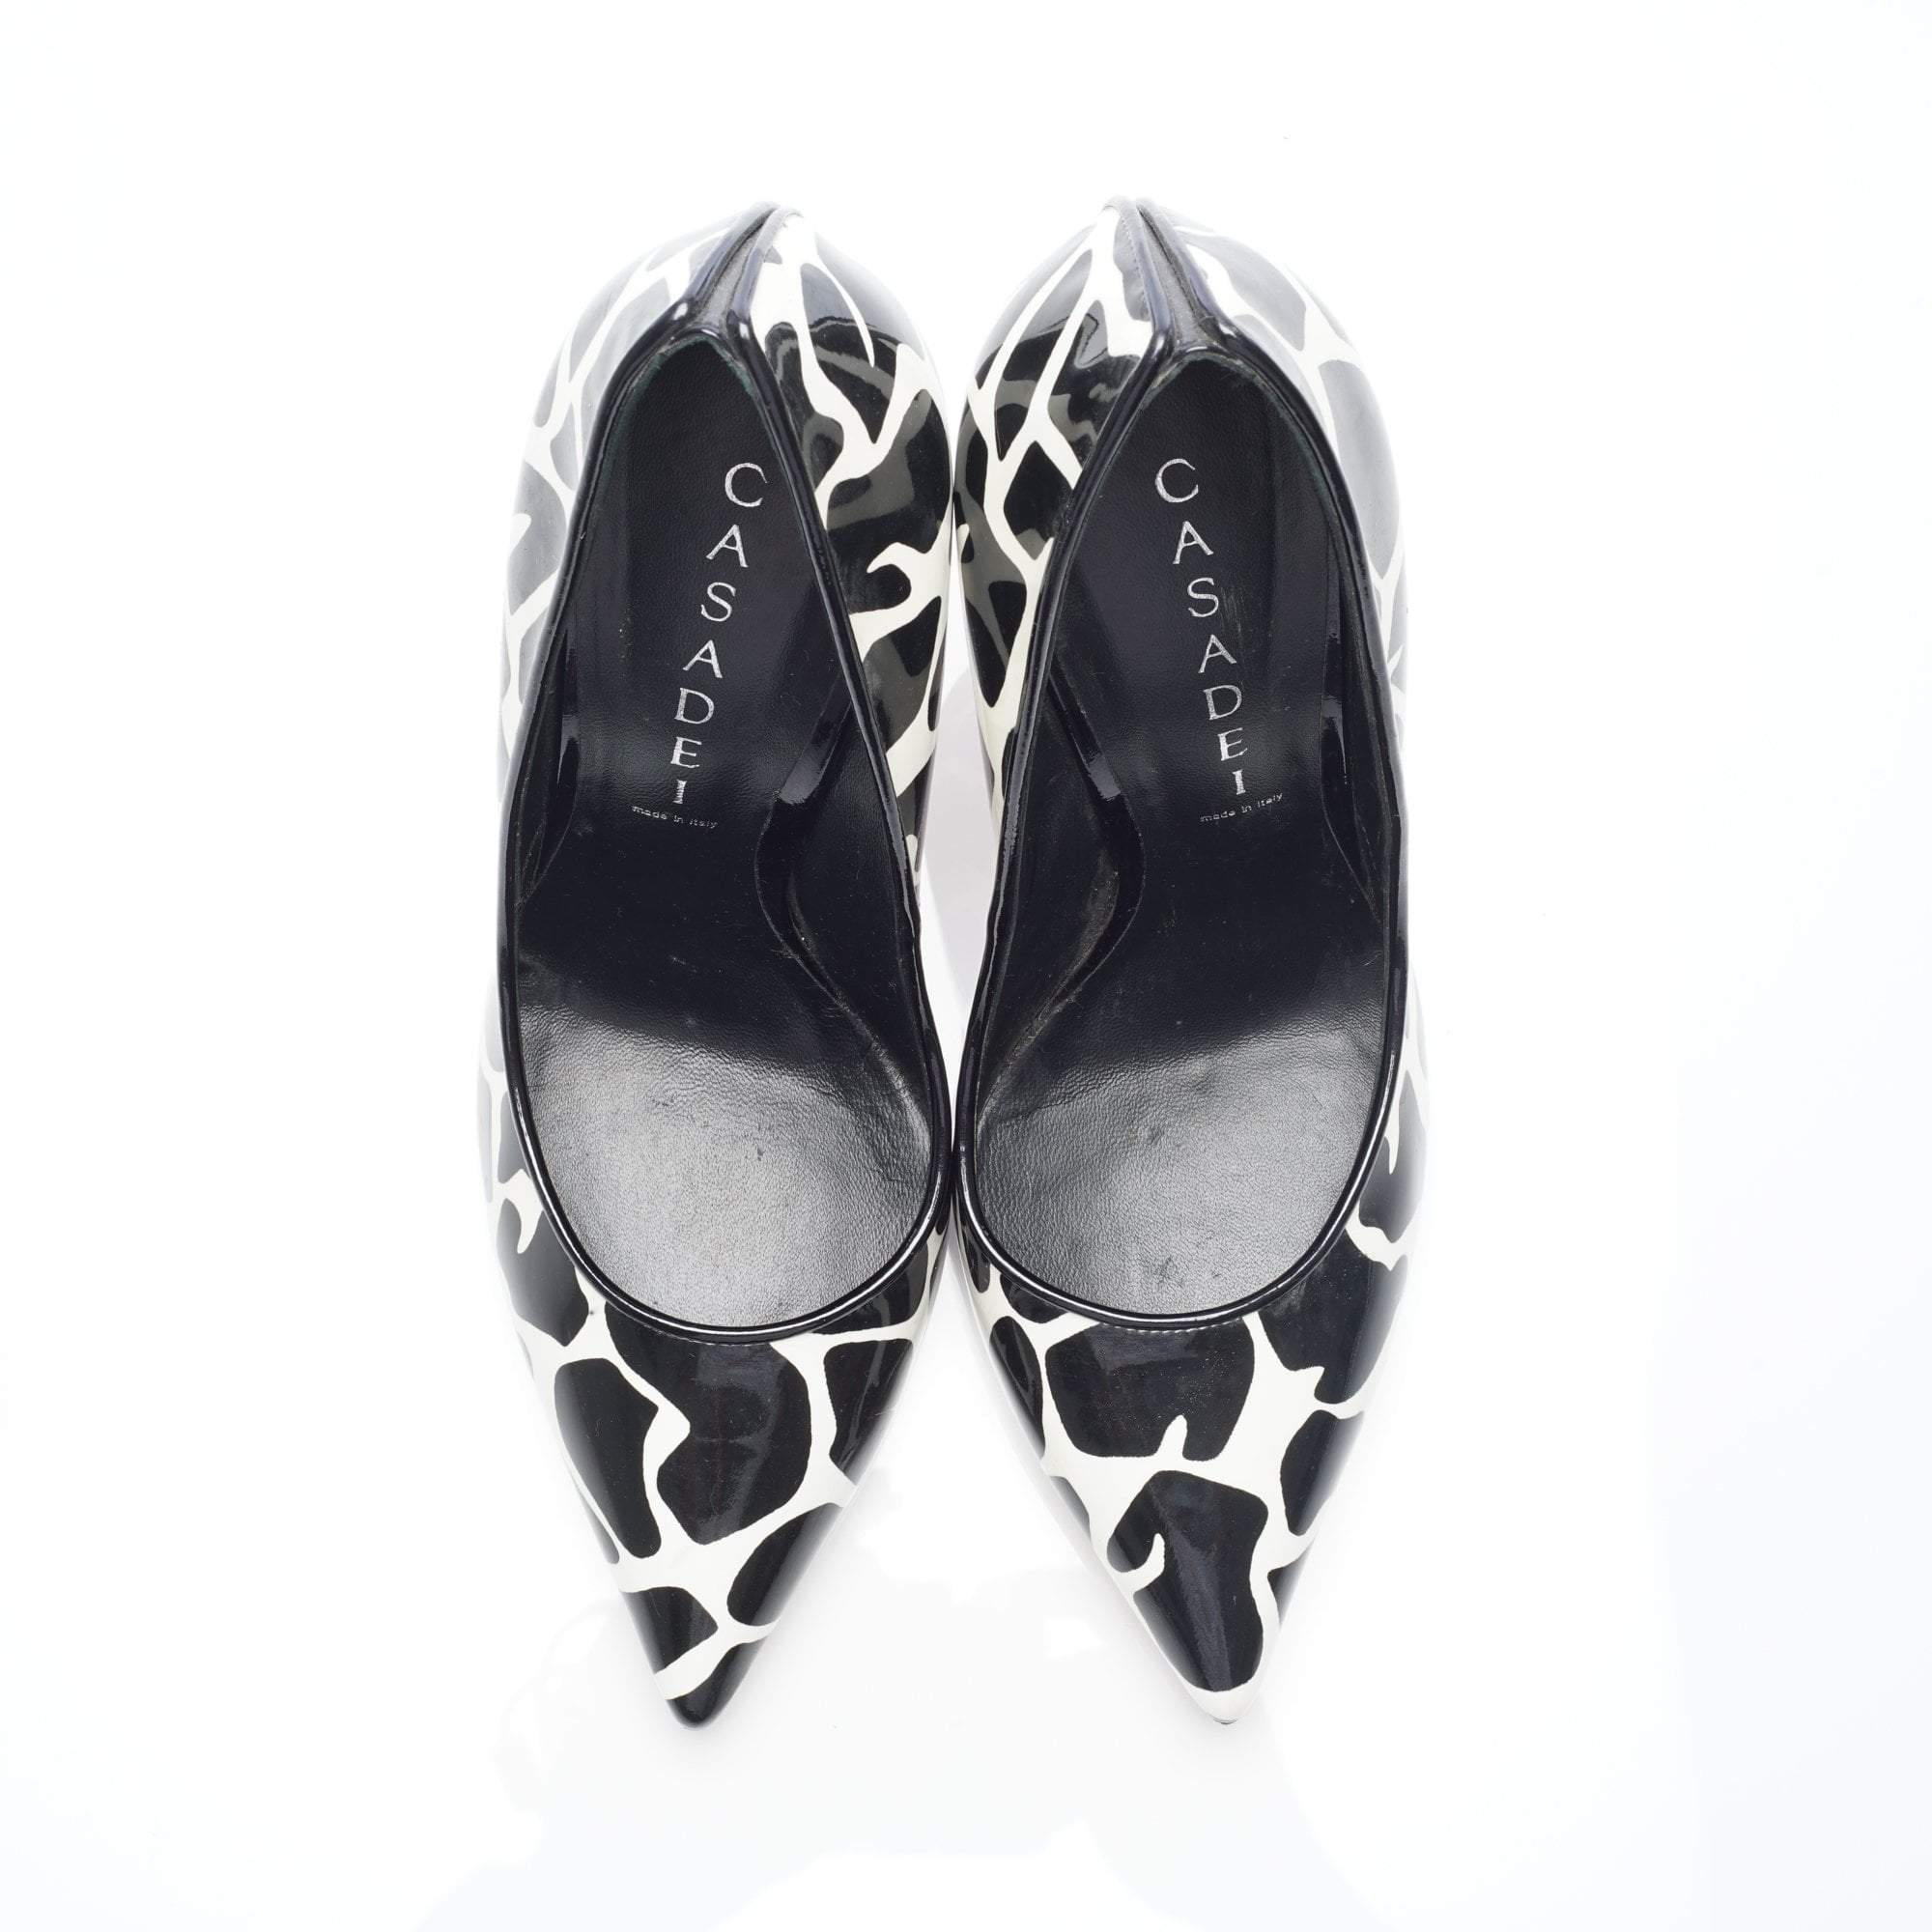 Casadei Black and White Giraffe Printed Pointed-toe Pump